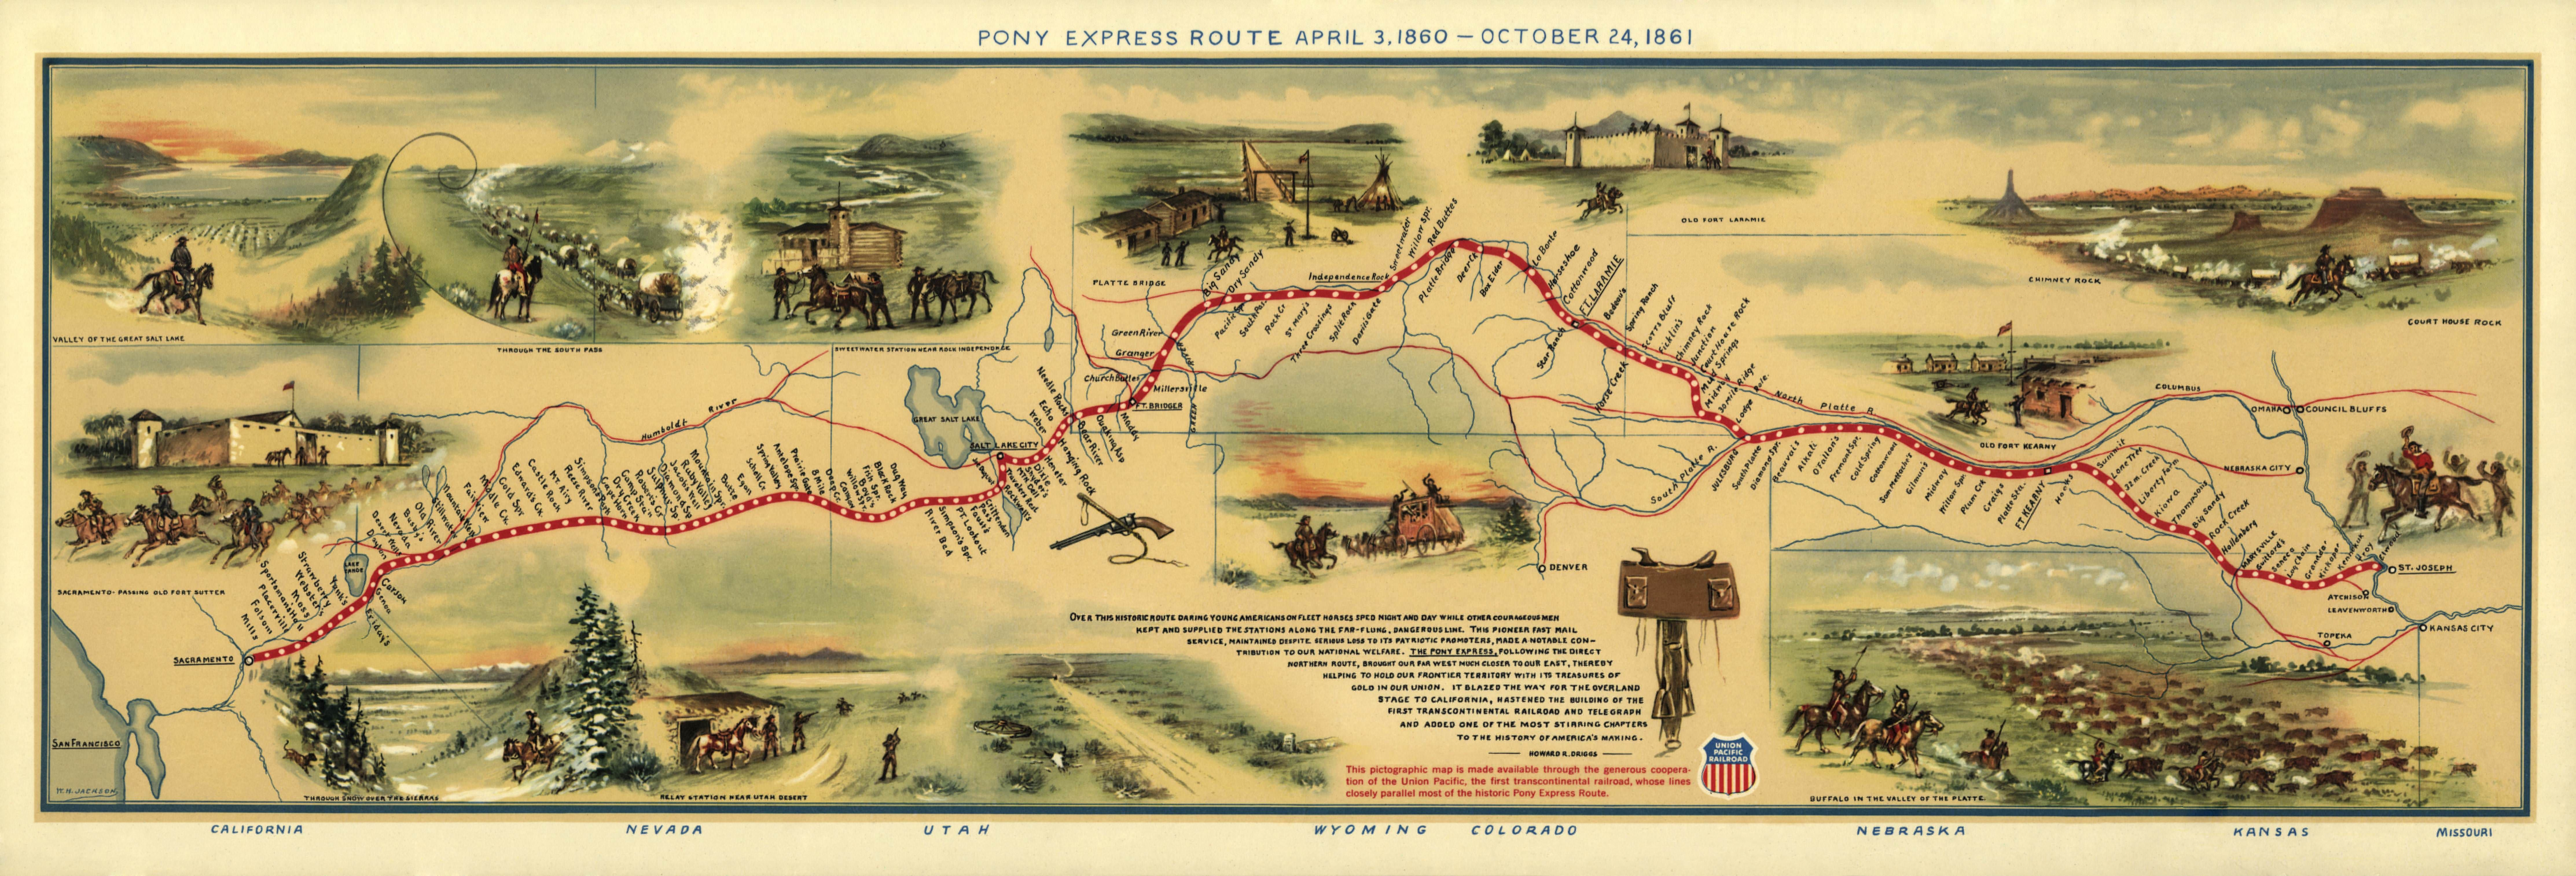 Pony Montana Map.Pony Express Route Map 1935 By William Henry Jackson Maps